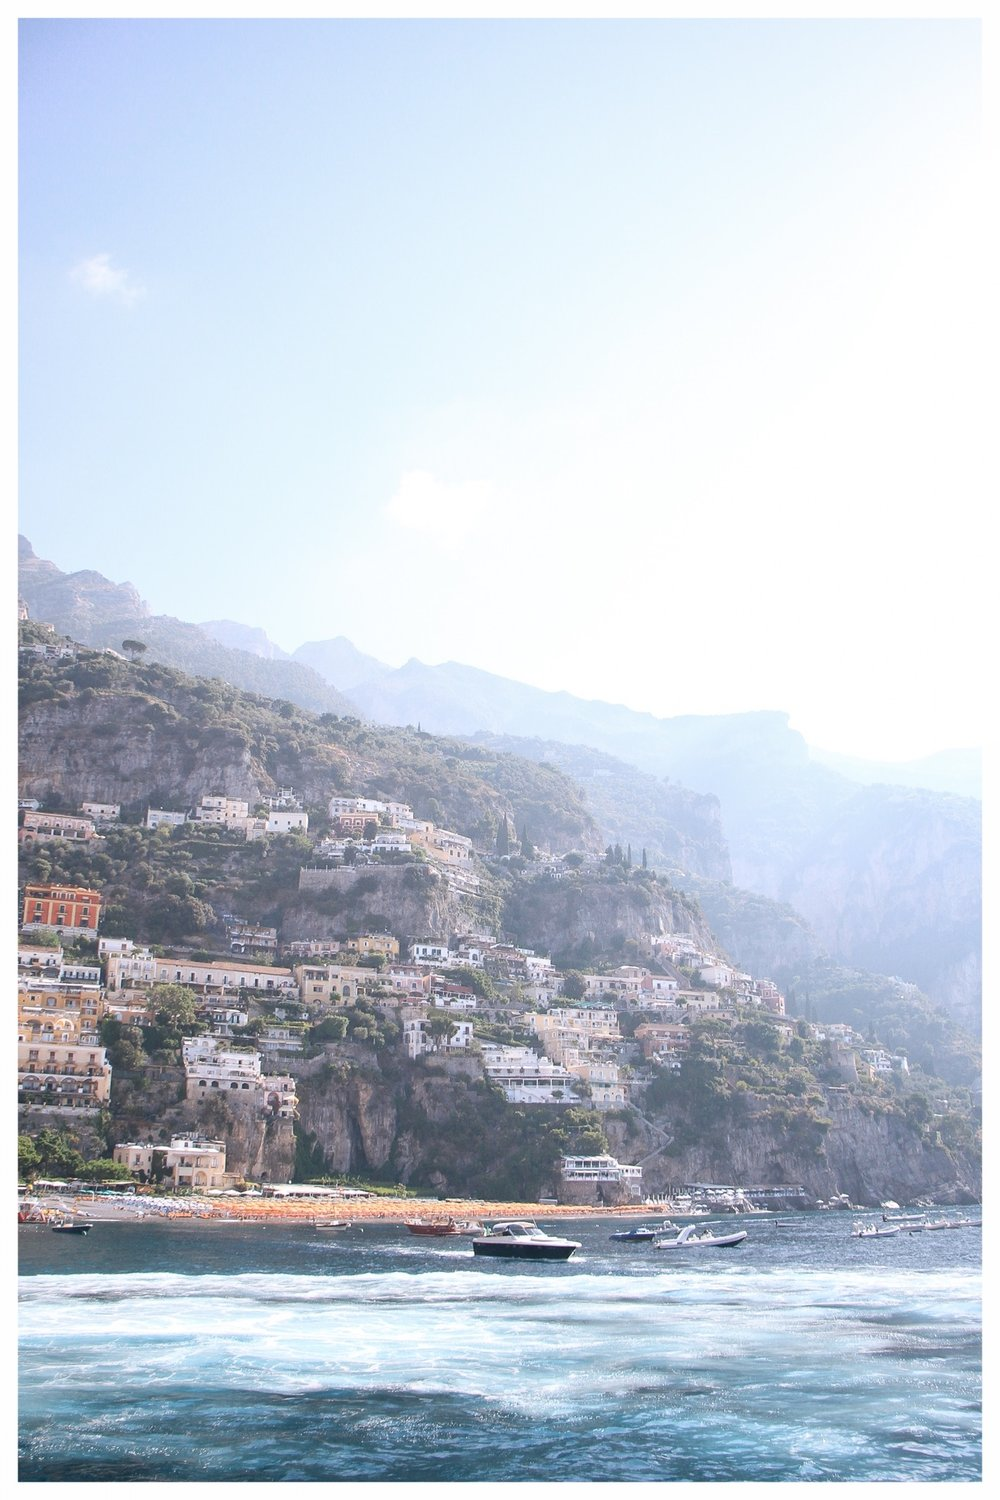 Positano-Travel-Guide-16